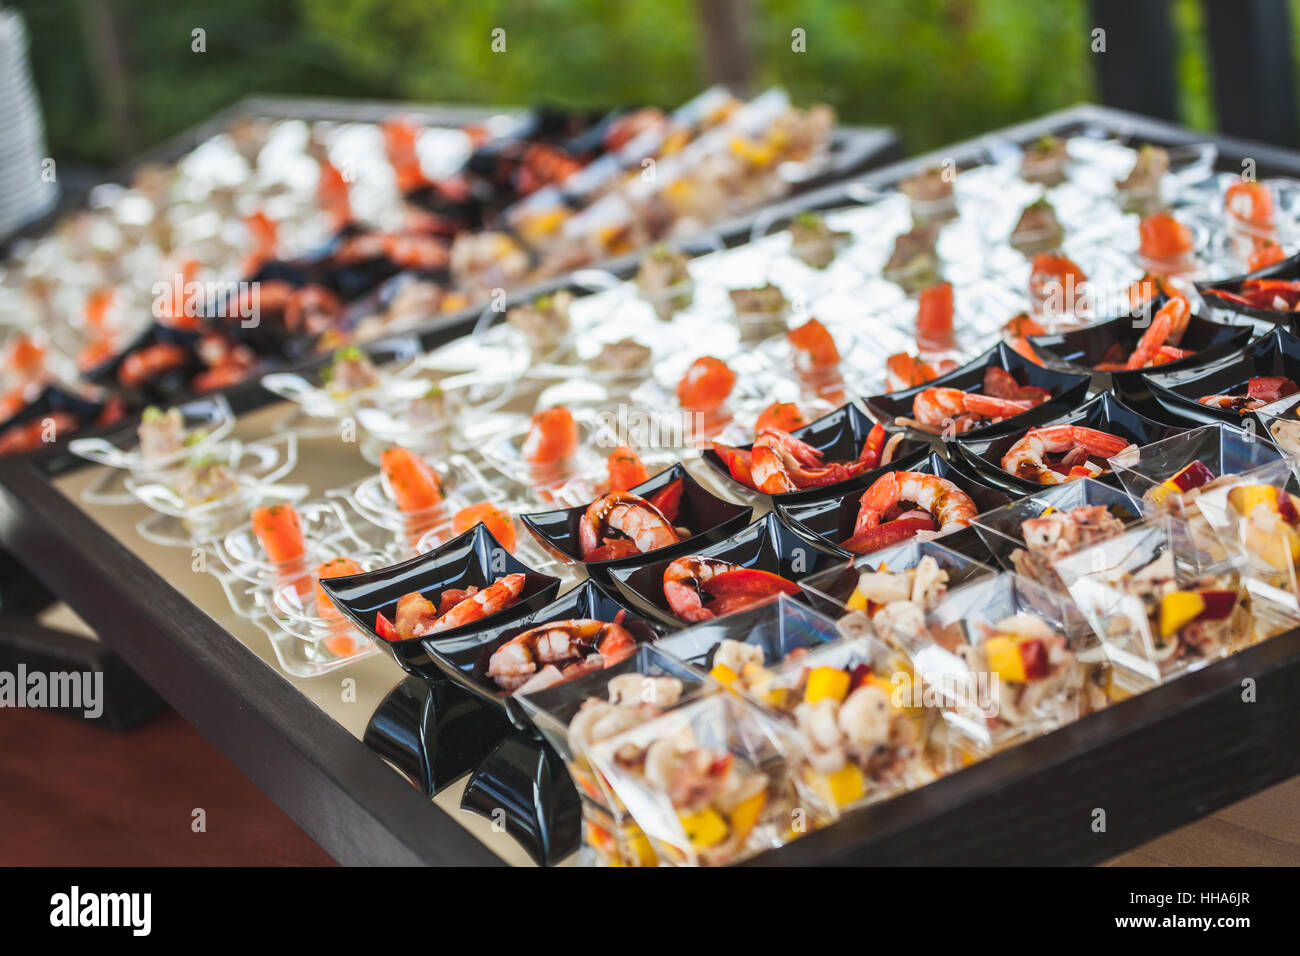 Catering service preparing aperitif for a wedding - Stock Image